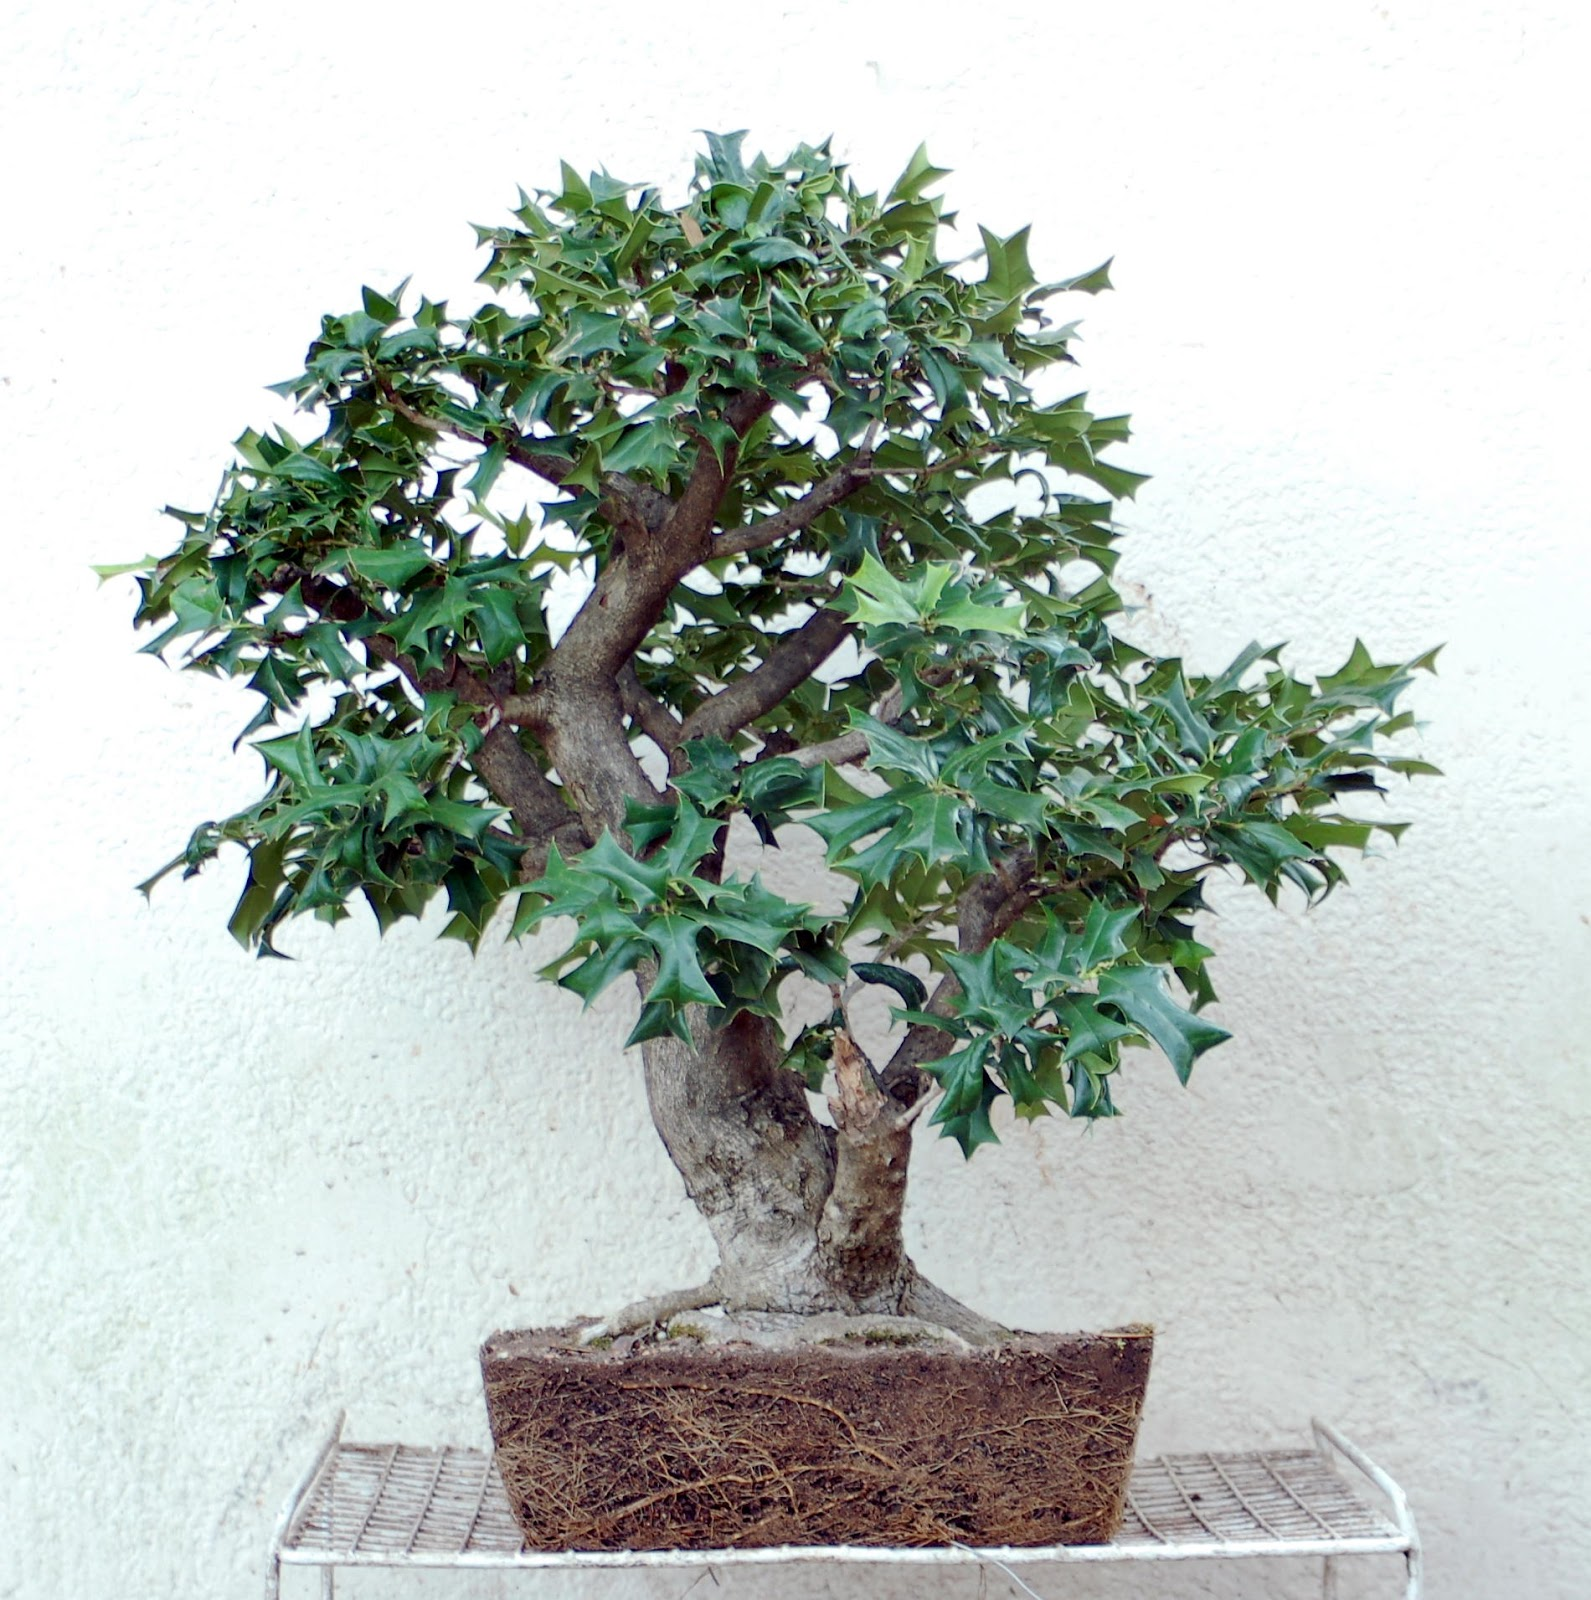 Heart Of Texas Bonsai August 2013